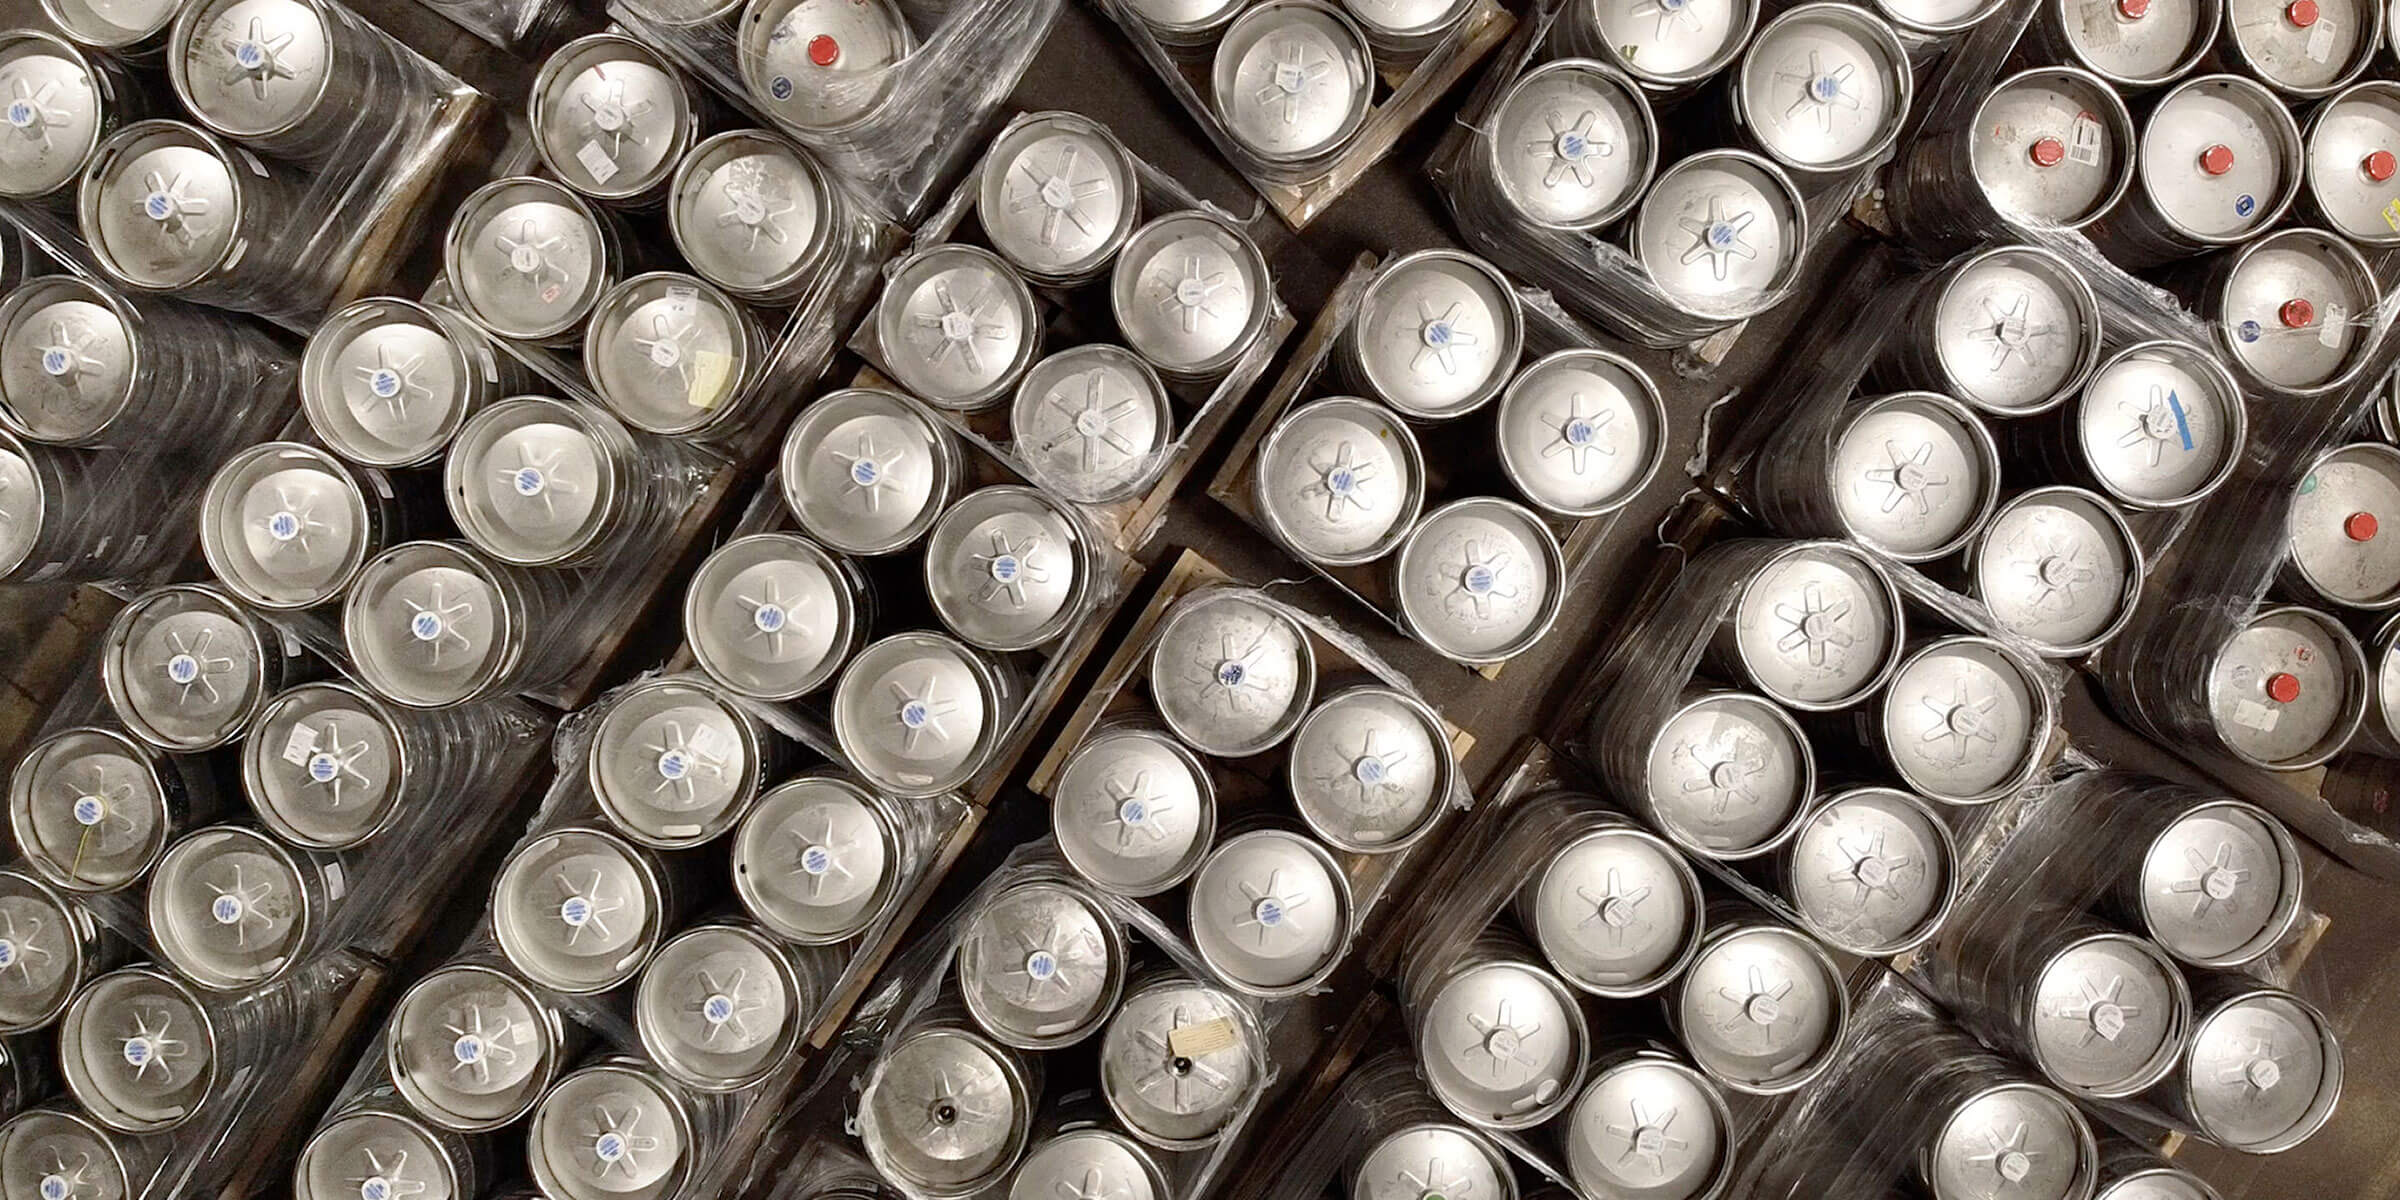 Farrell Distributing, a beer distributor in Vermont, is donating kegs of draft beer to be turned into hand sanitizer.